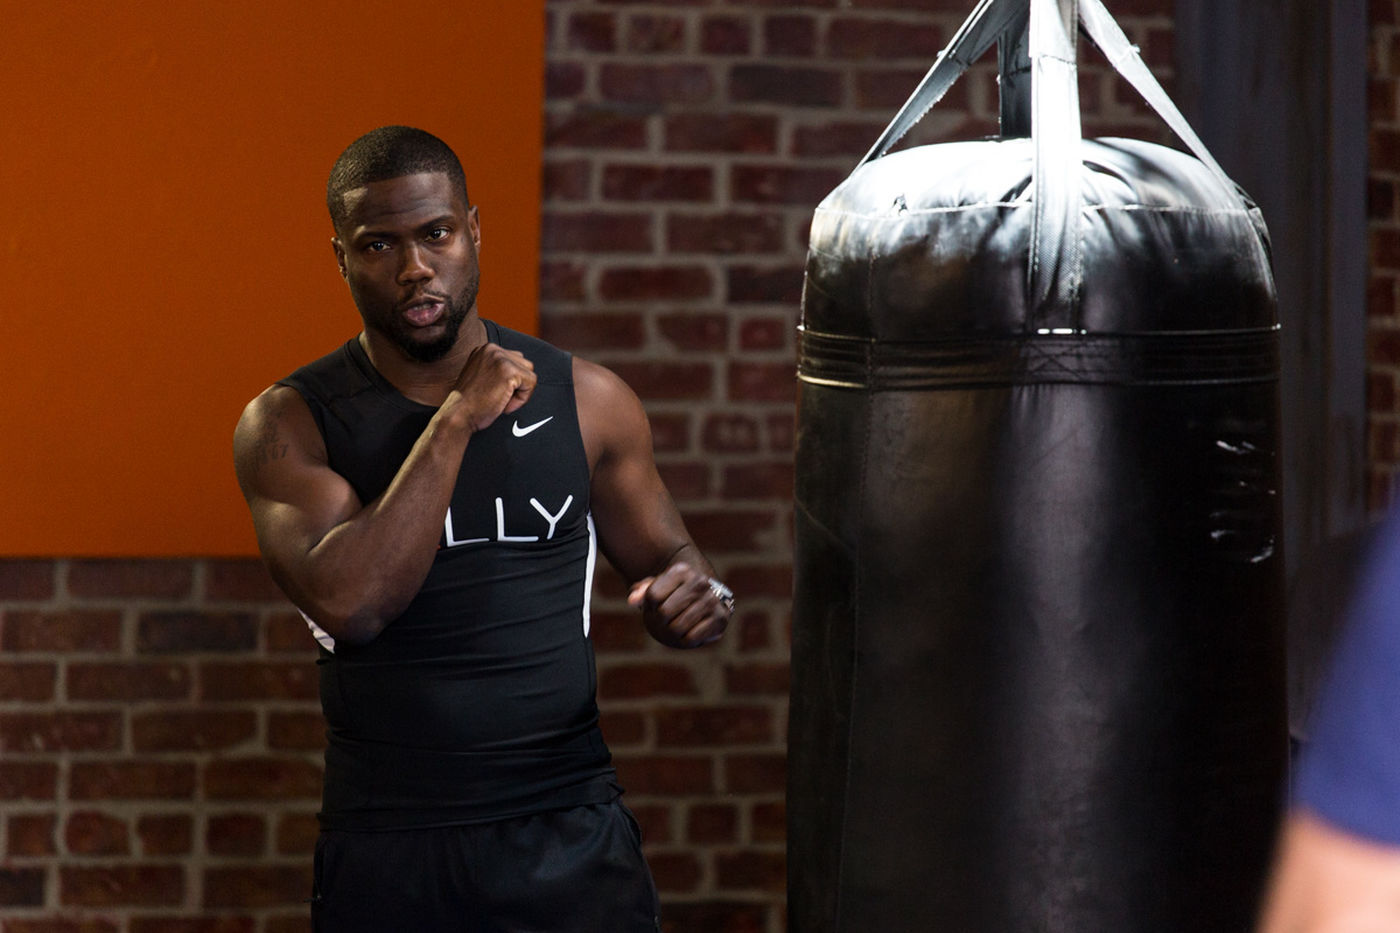 Antonio Esfandiari Says He Will Fight Kevin Hart In Boxing